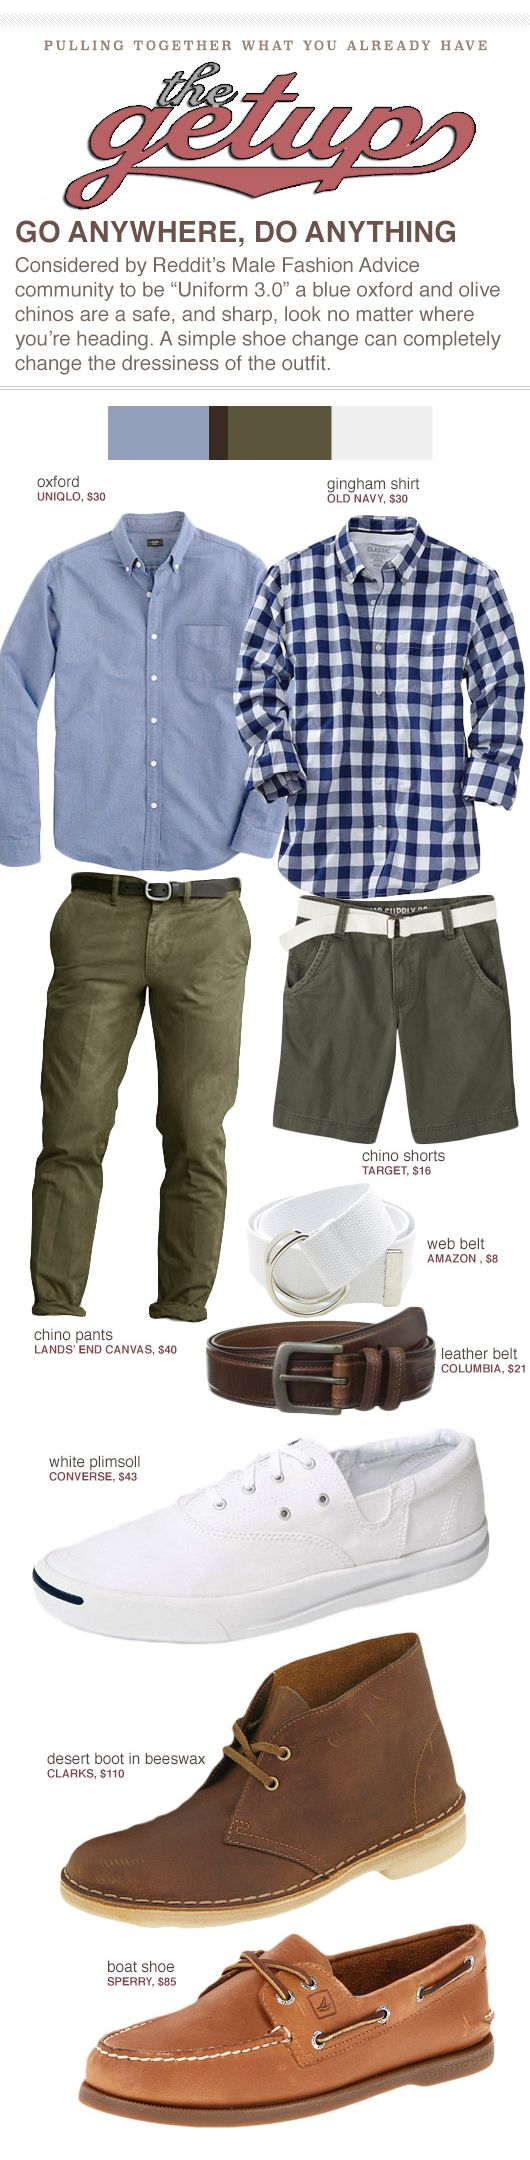 The Getup: Go Anywhere, Do Anything - Considered by Reddit's Male Fashion  Advice community